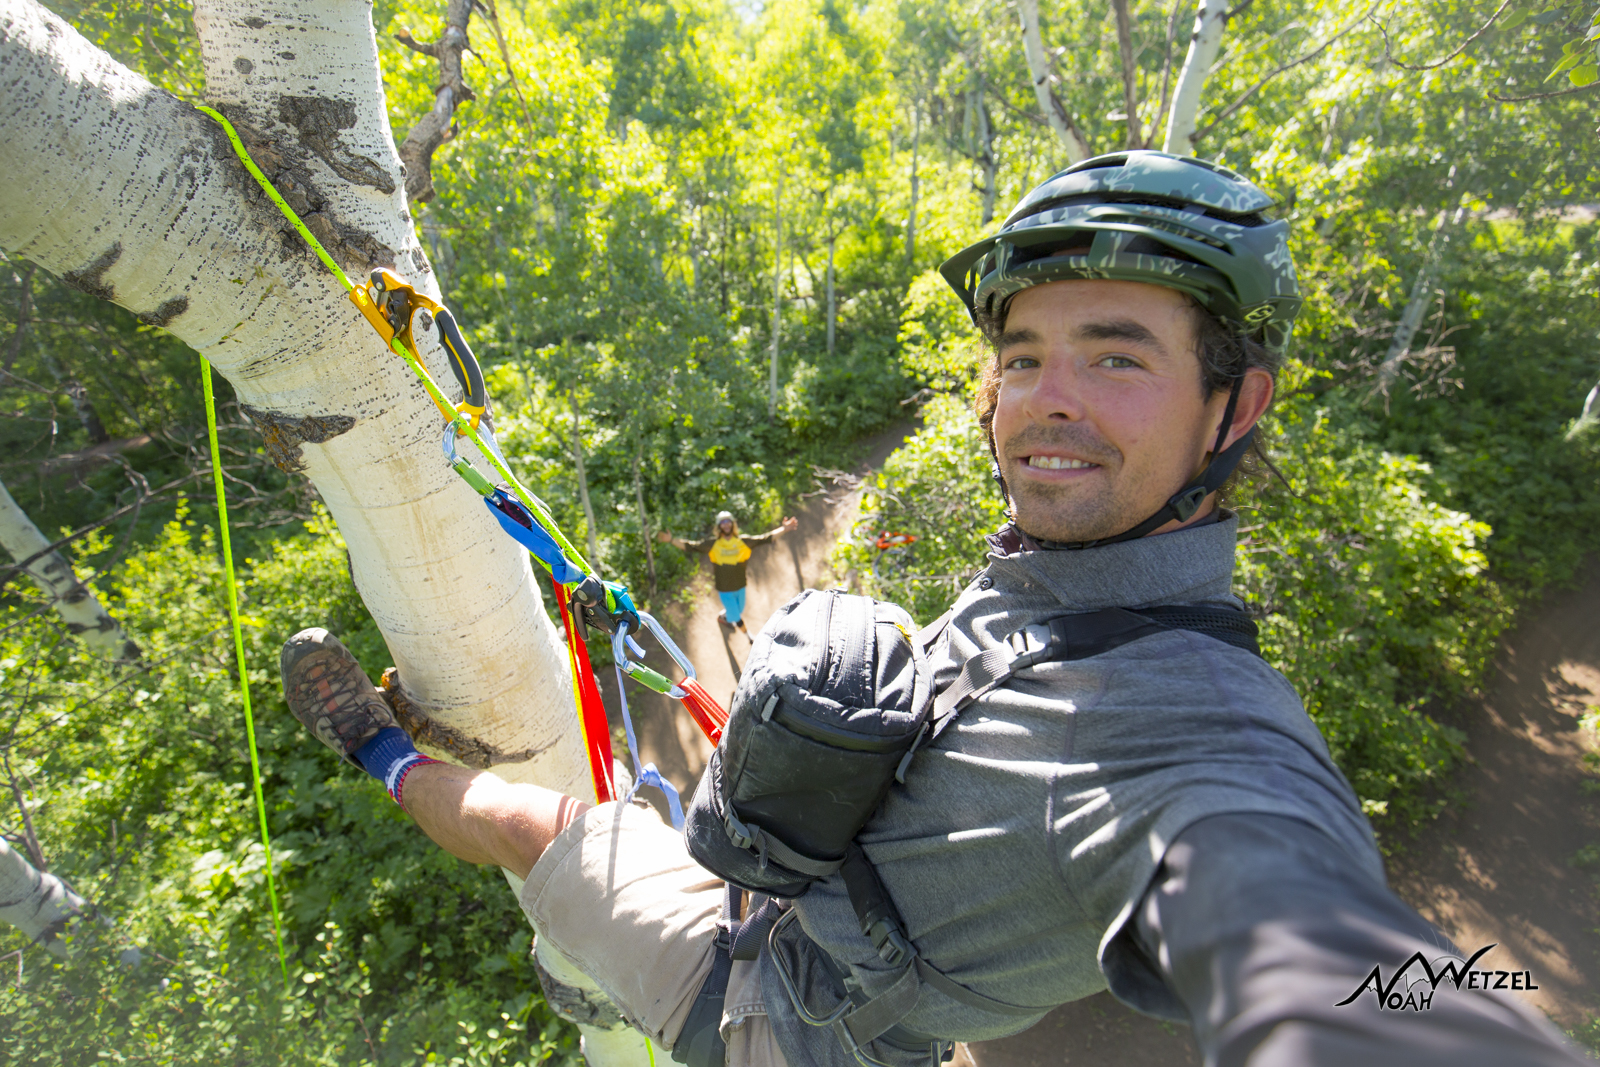 Selfie...up in the trees shooting Mike Rundle on NPR. Emerald Mountain. Steamboat Springs, Colorado.